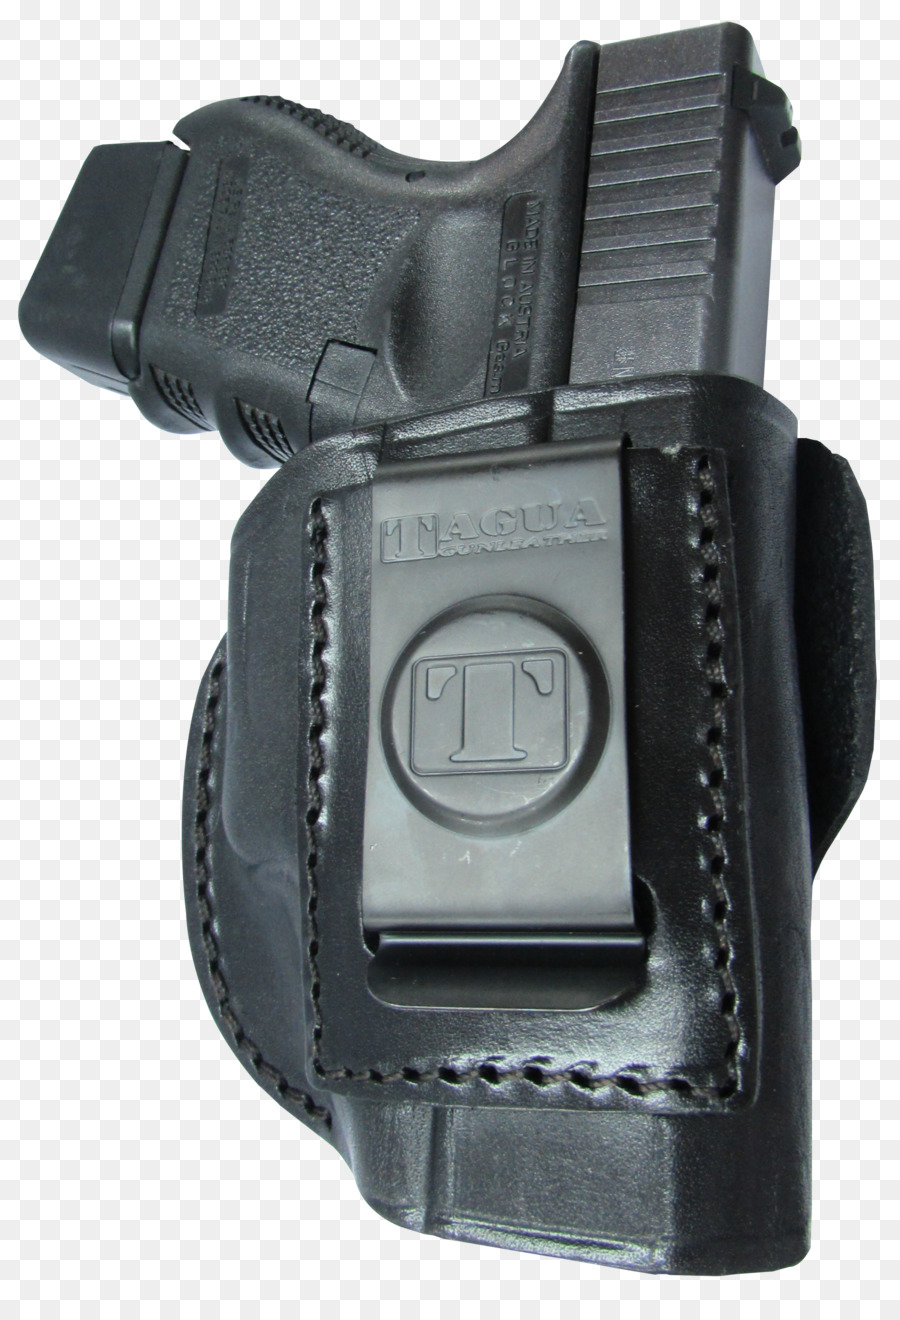 Gun Holsters Smith & Wesson M&P HS2000 TAGUA IPH 4-IN-1 1911 3